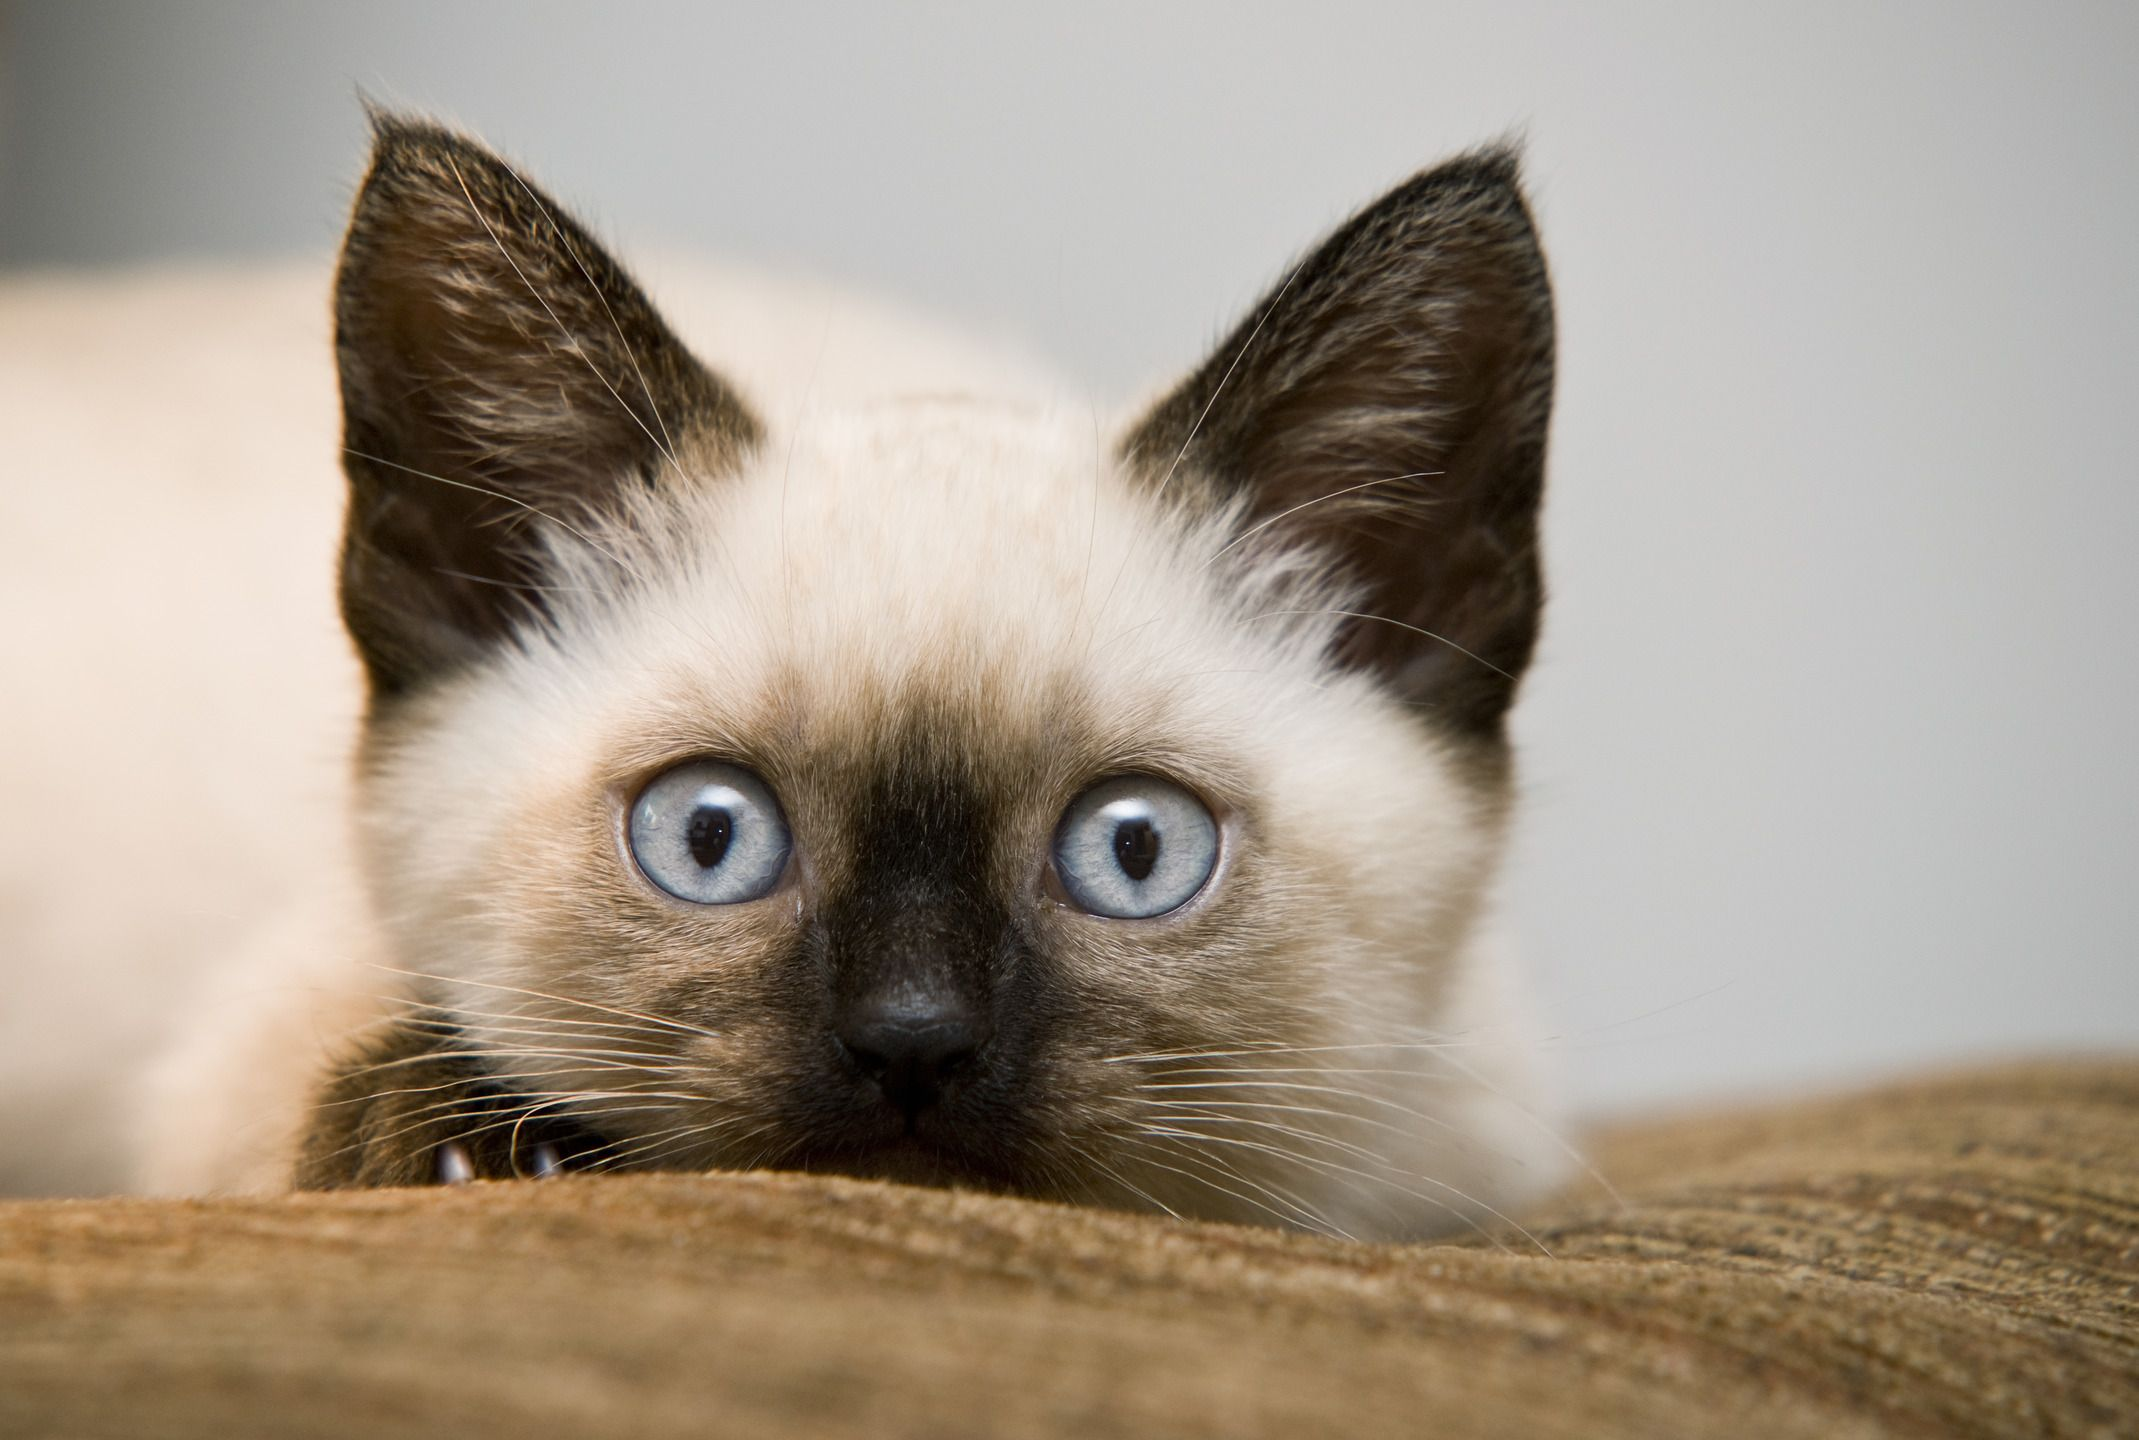 Blueeyed beauty Siamese kittens, Pretty cats, Siamese cats